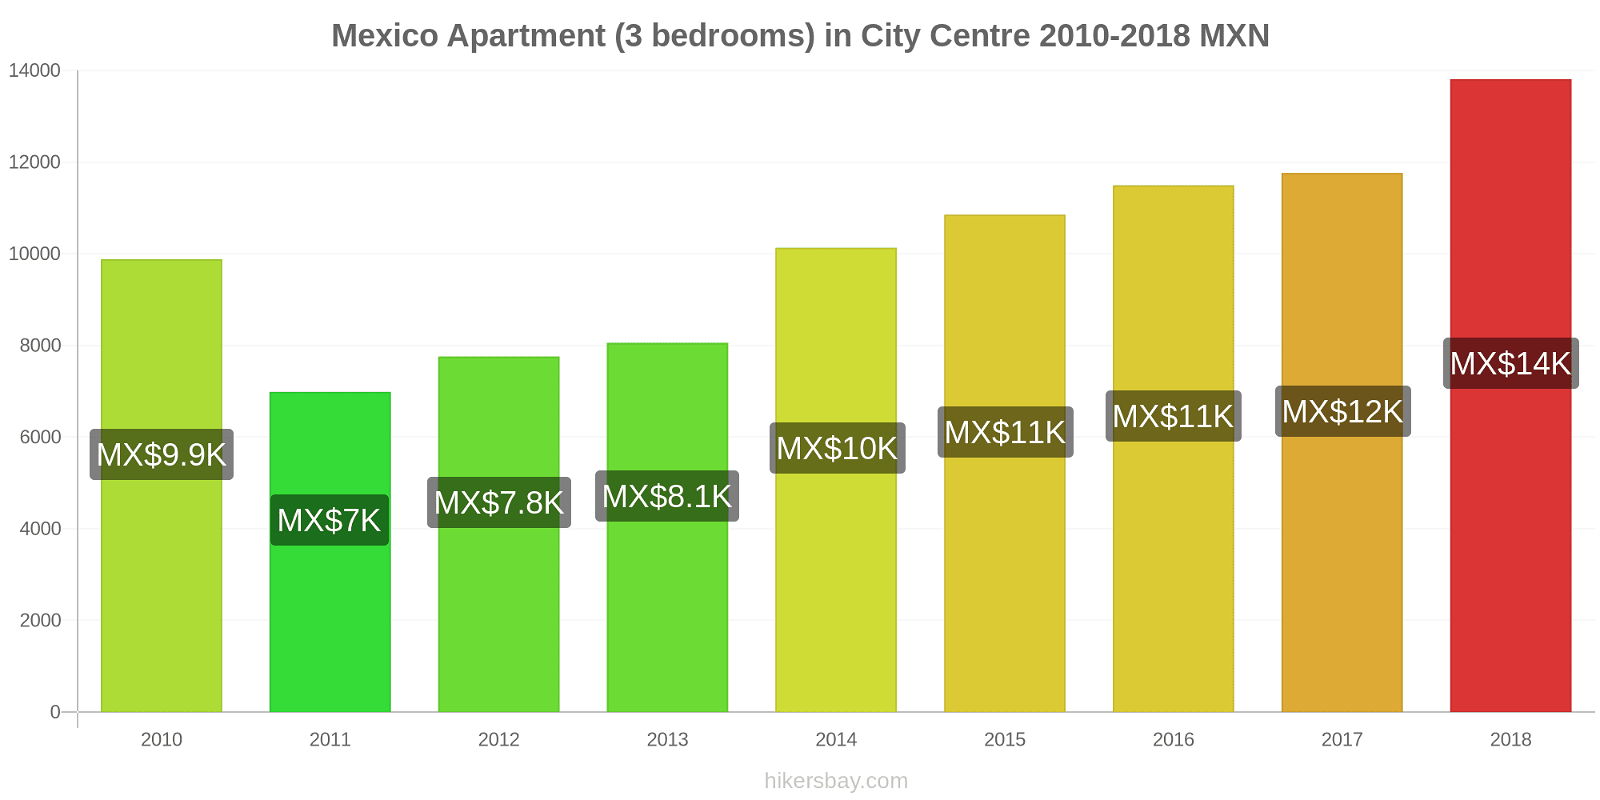 Mexico price changes Apartment (3 bedrooms) in City Centre hikersbay.com